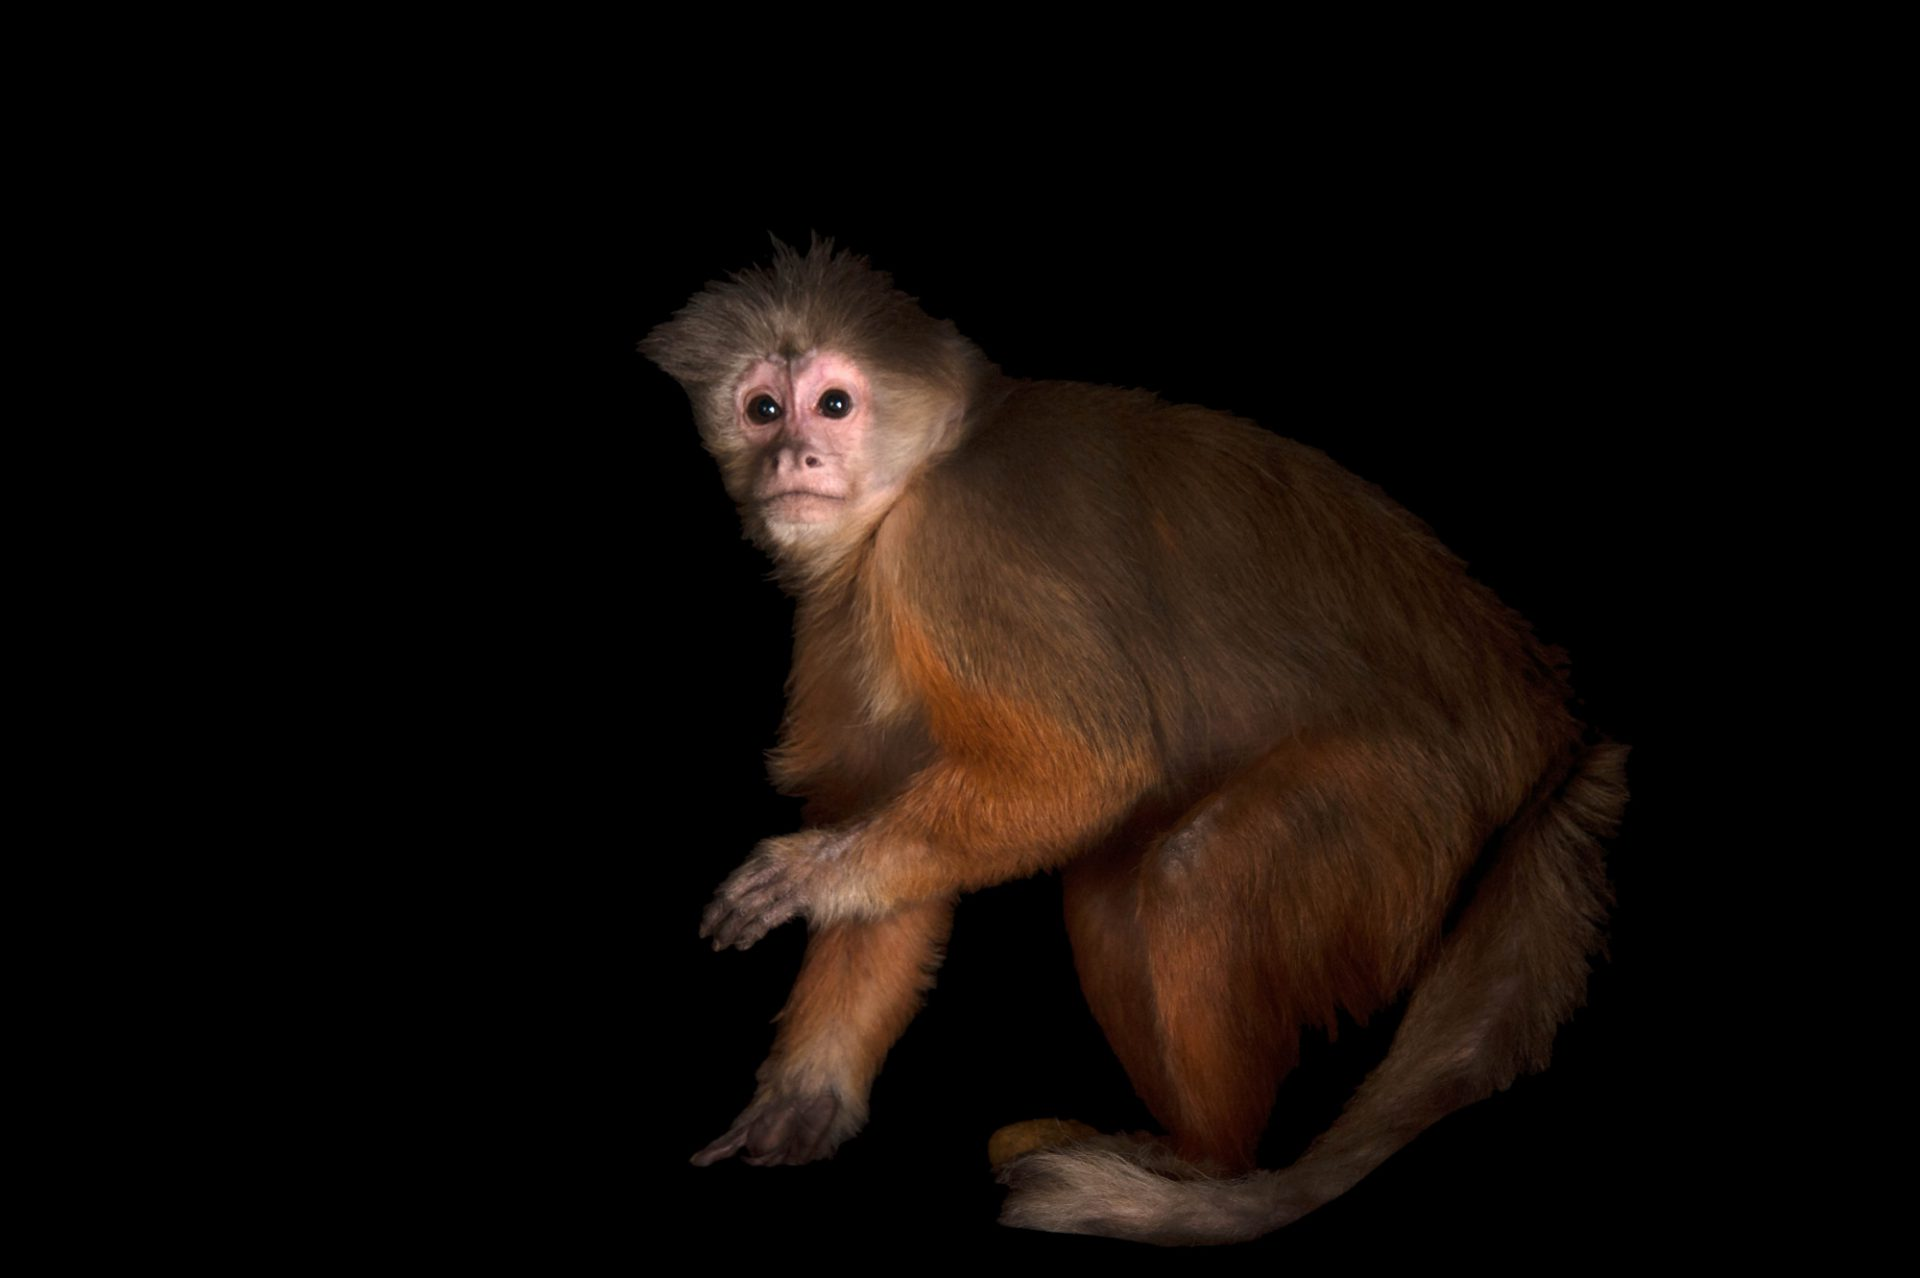 A white-fronted capuchin (Cebus albifrons) at the Omaha Henry Doorly Zoo and Aquarium.